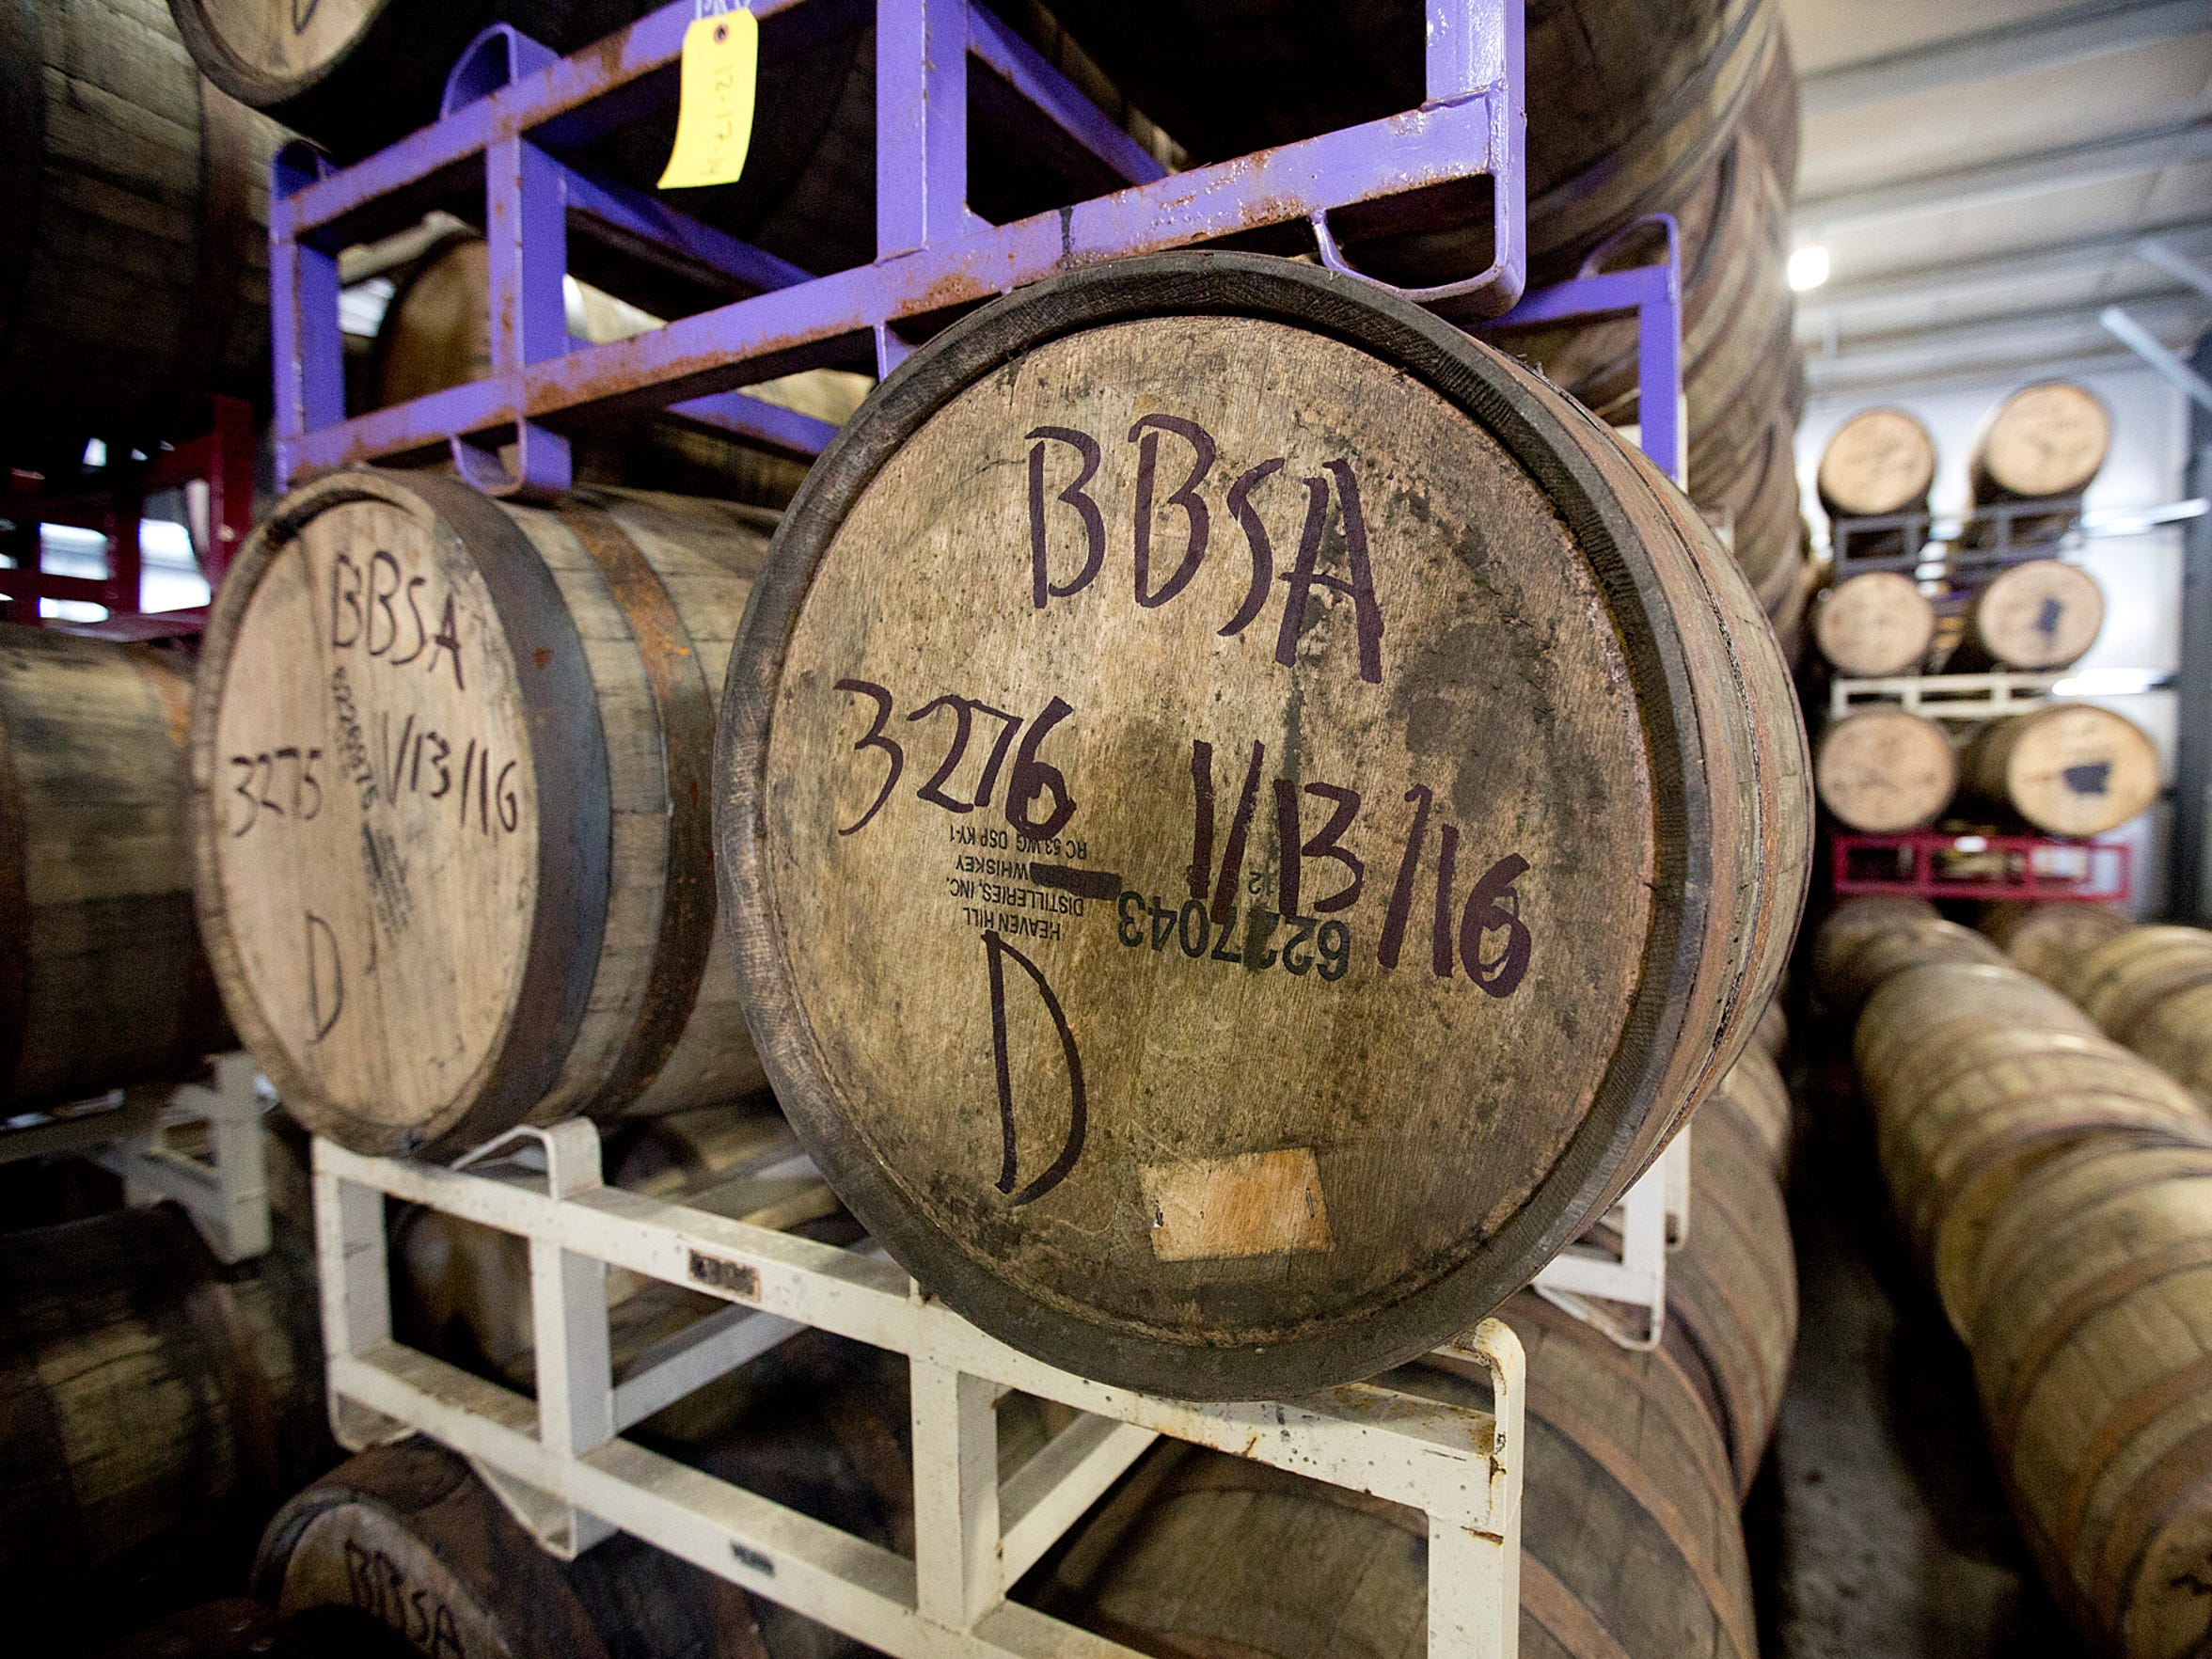 More than a third of the beer produced by Central Waters last year was aged in oak barrels. Even at that, it disappears from beer coolers in a hurry.